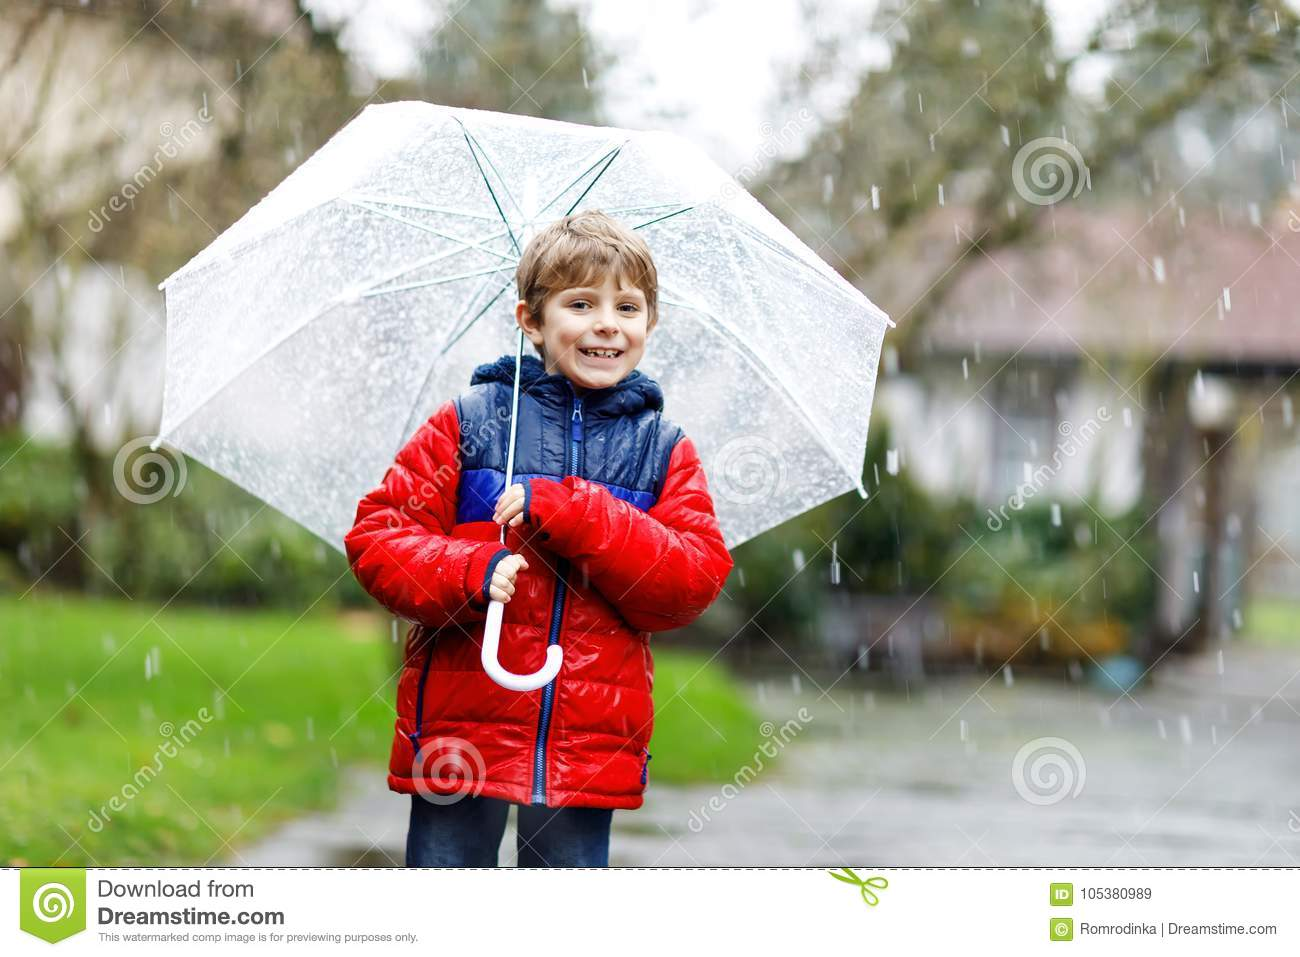 Little blond kid boy on way to school walking during sleet, rain and snow with an umbrella on cold day